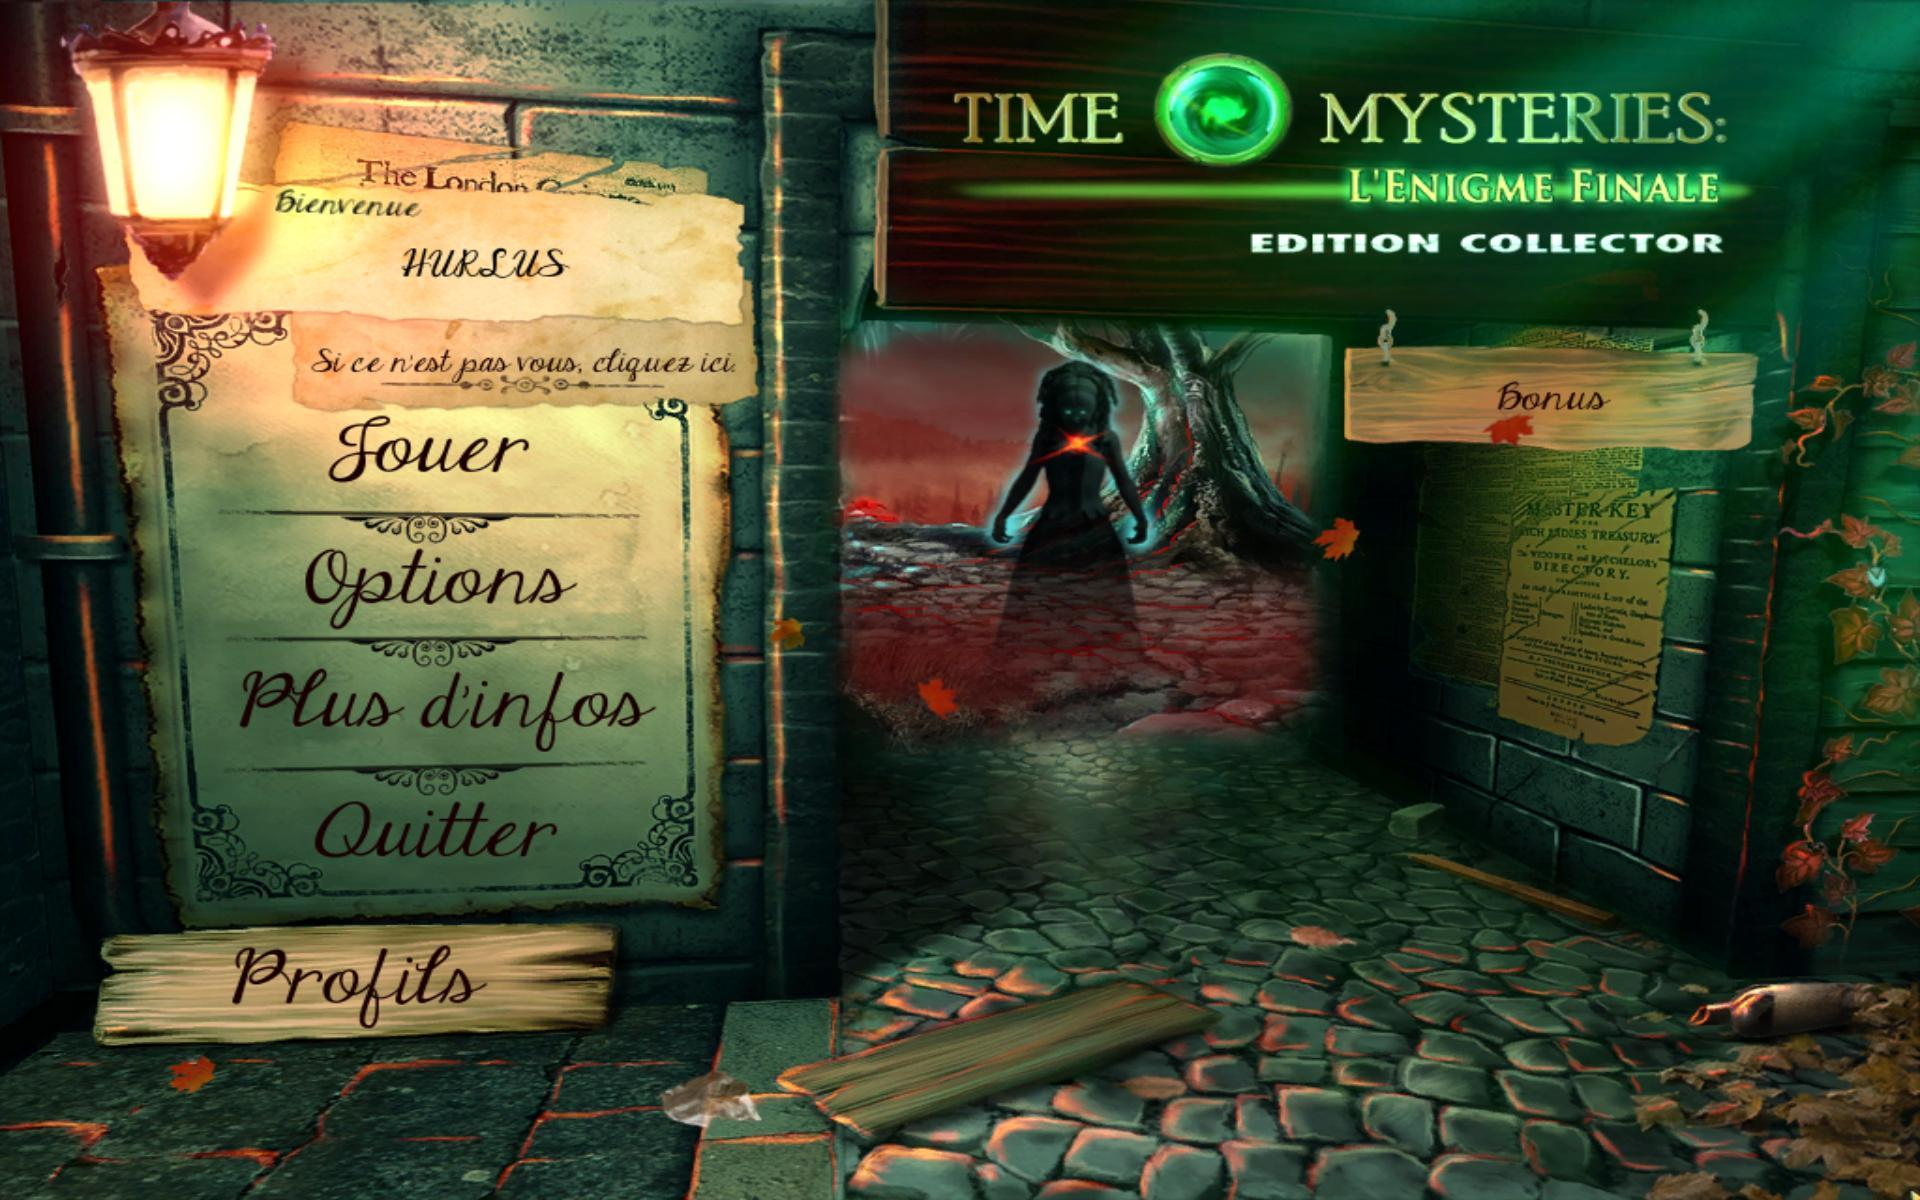 Time Mysteries: l'Enigme Final Edition Collector